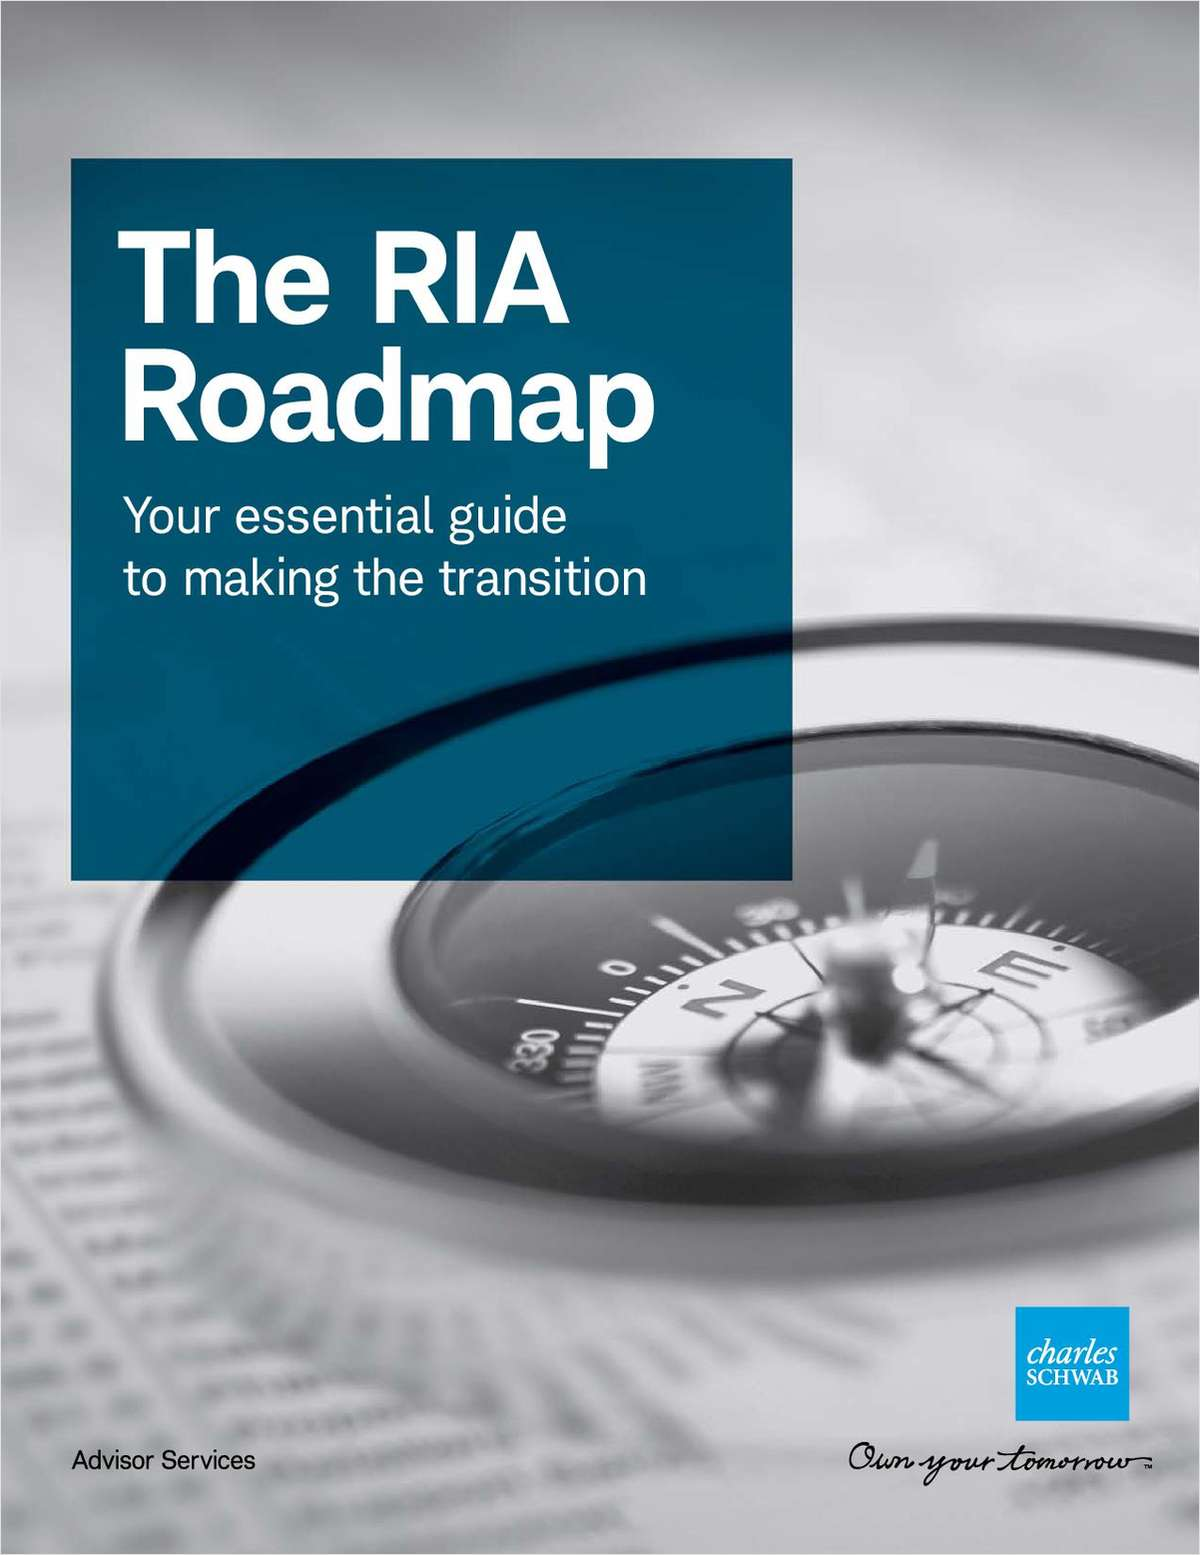 The RIA Roadmap: Your essential guide to making the transition